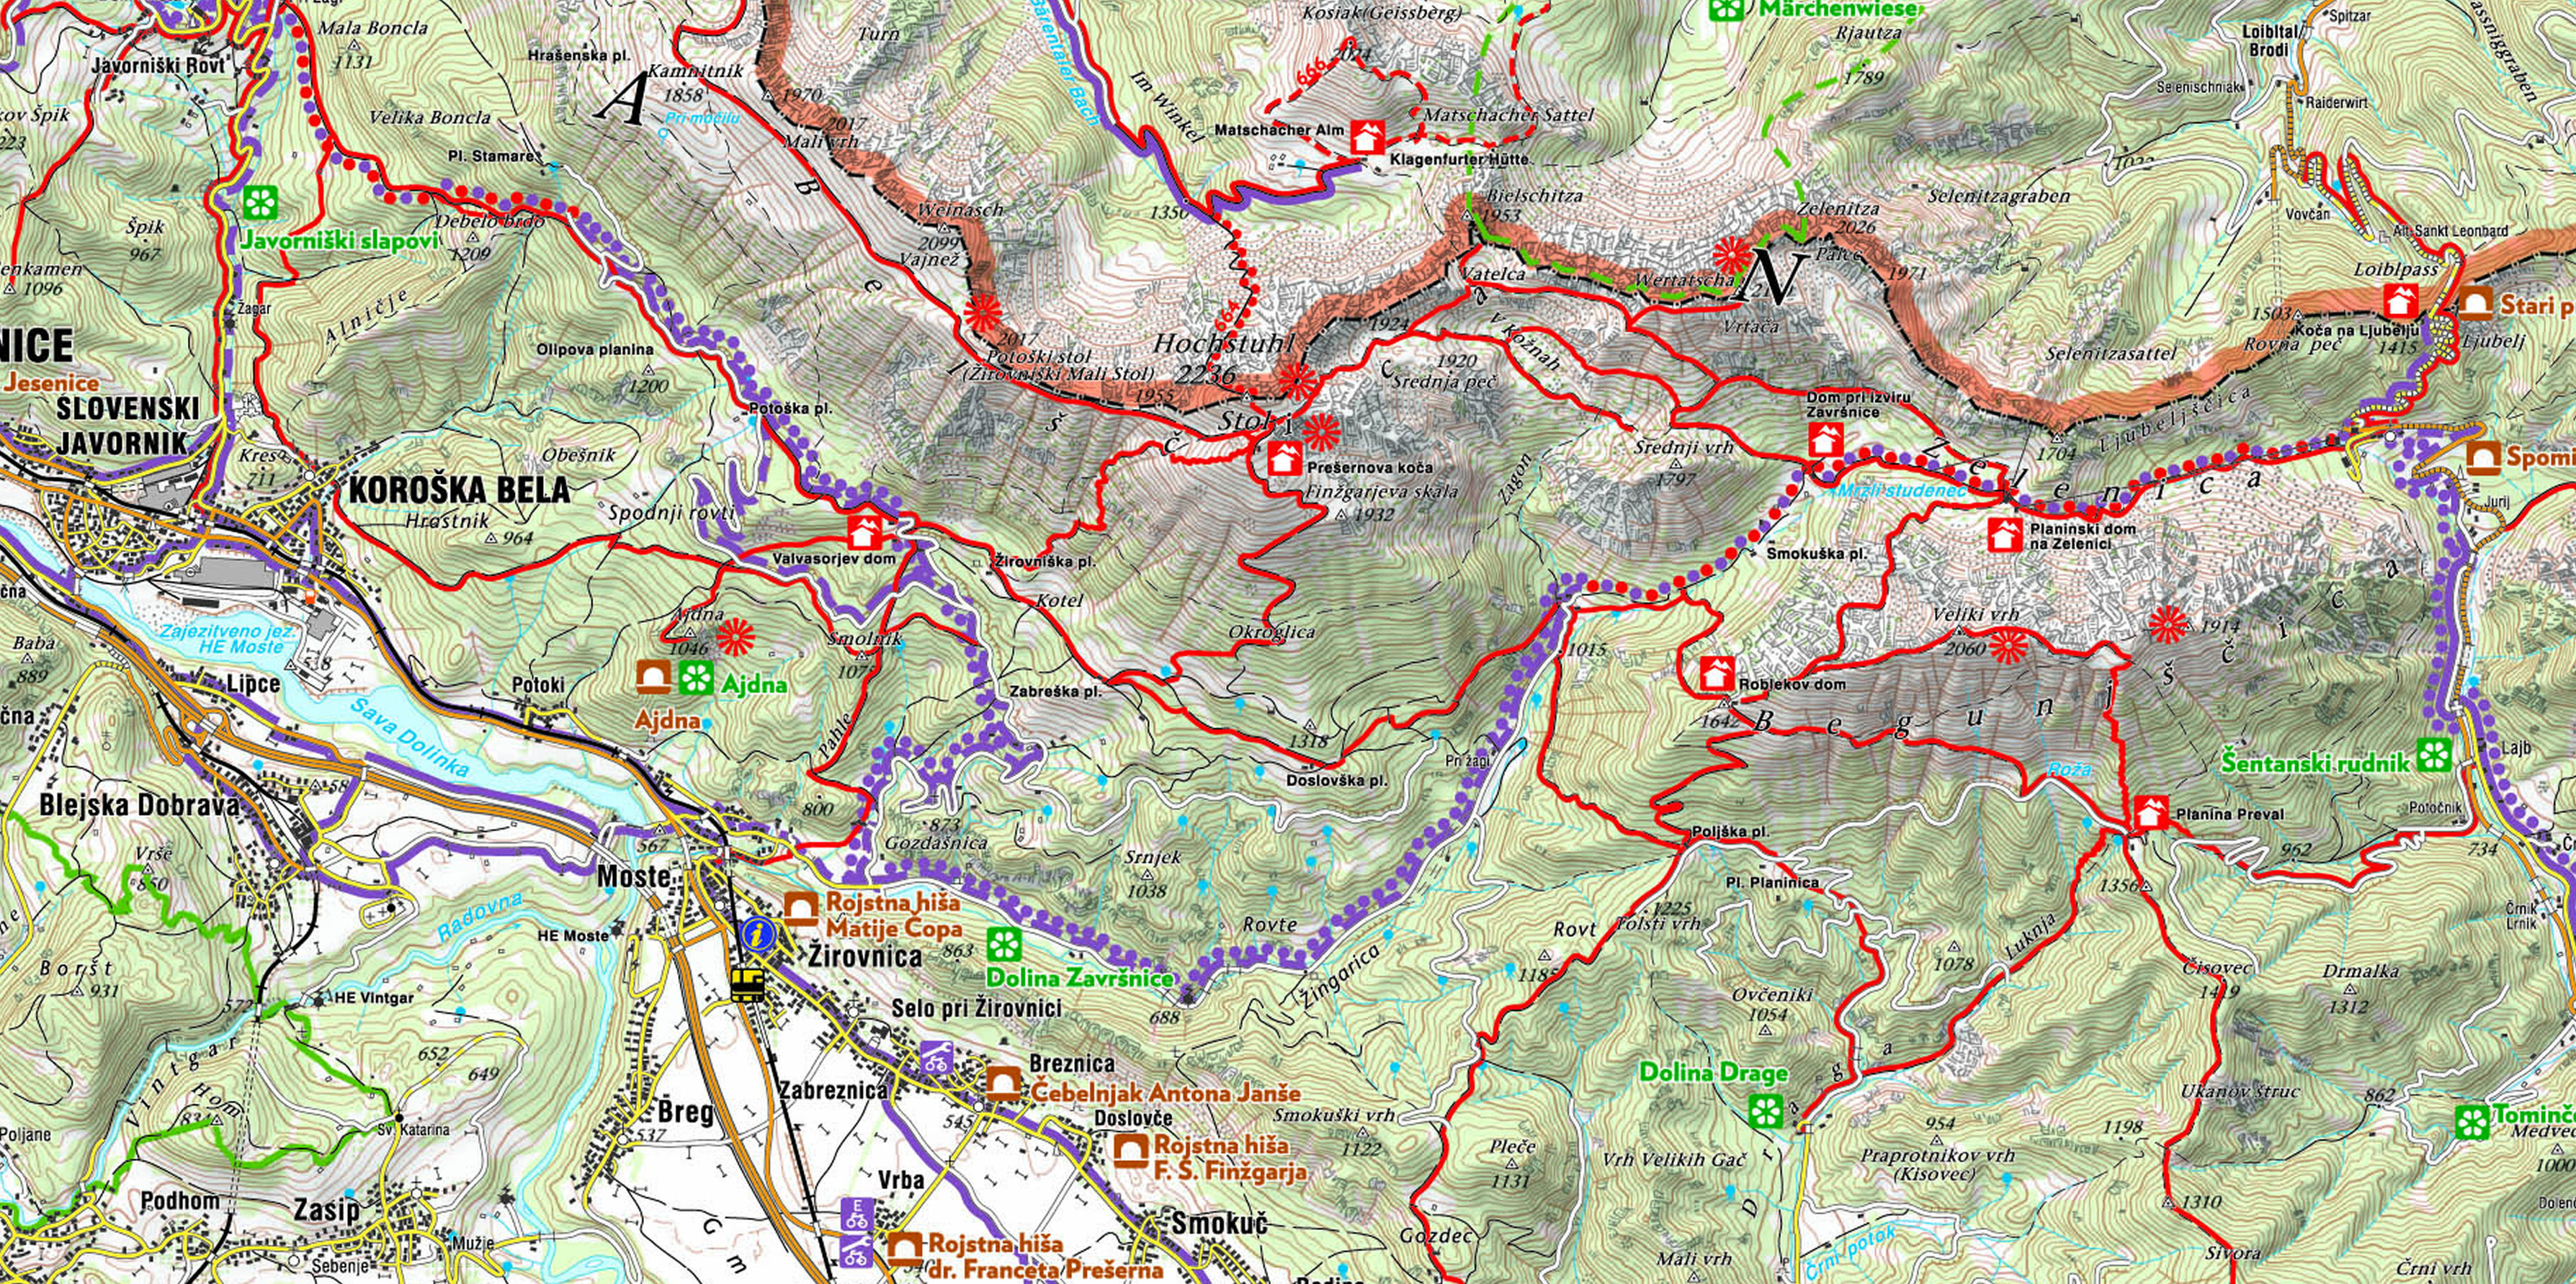 Hiking Options in the Karavanke mountain range and in the Julian Alps